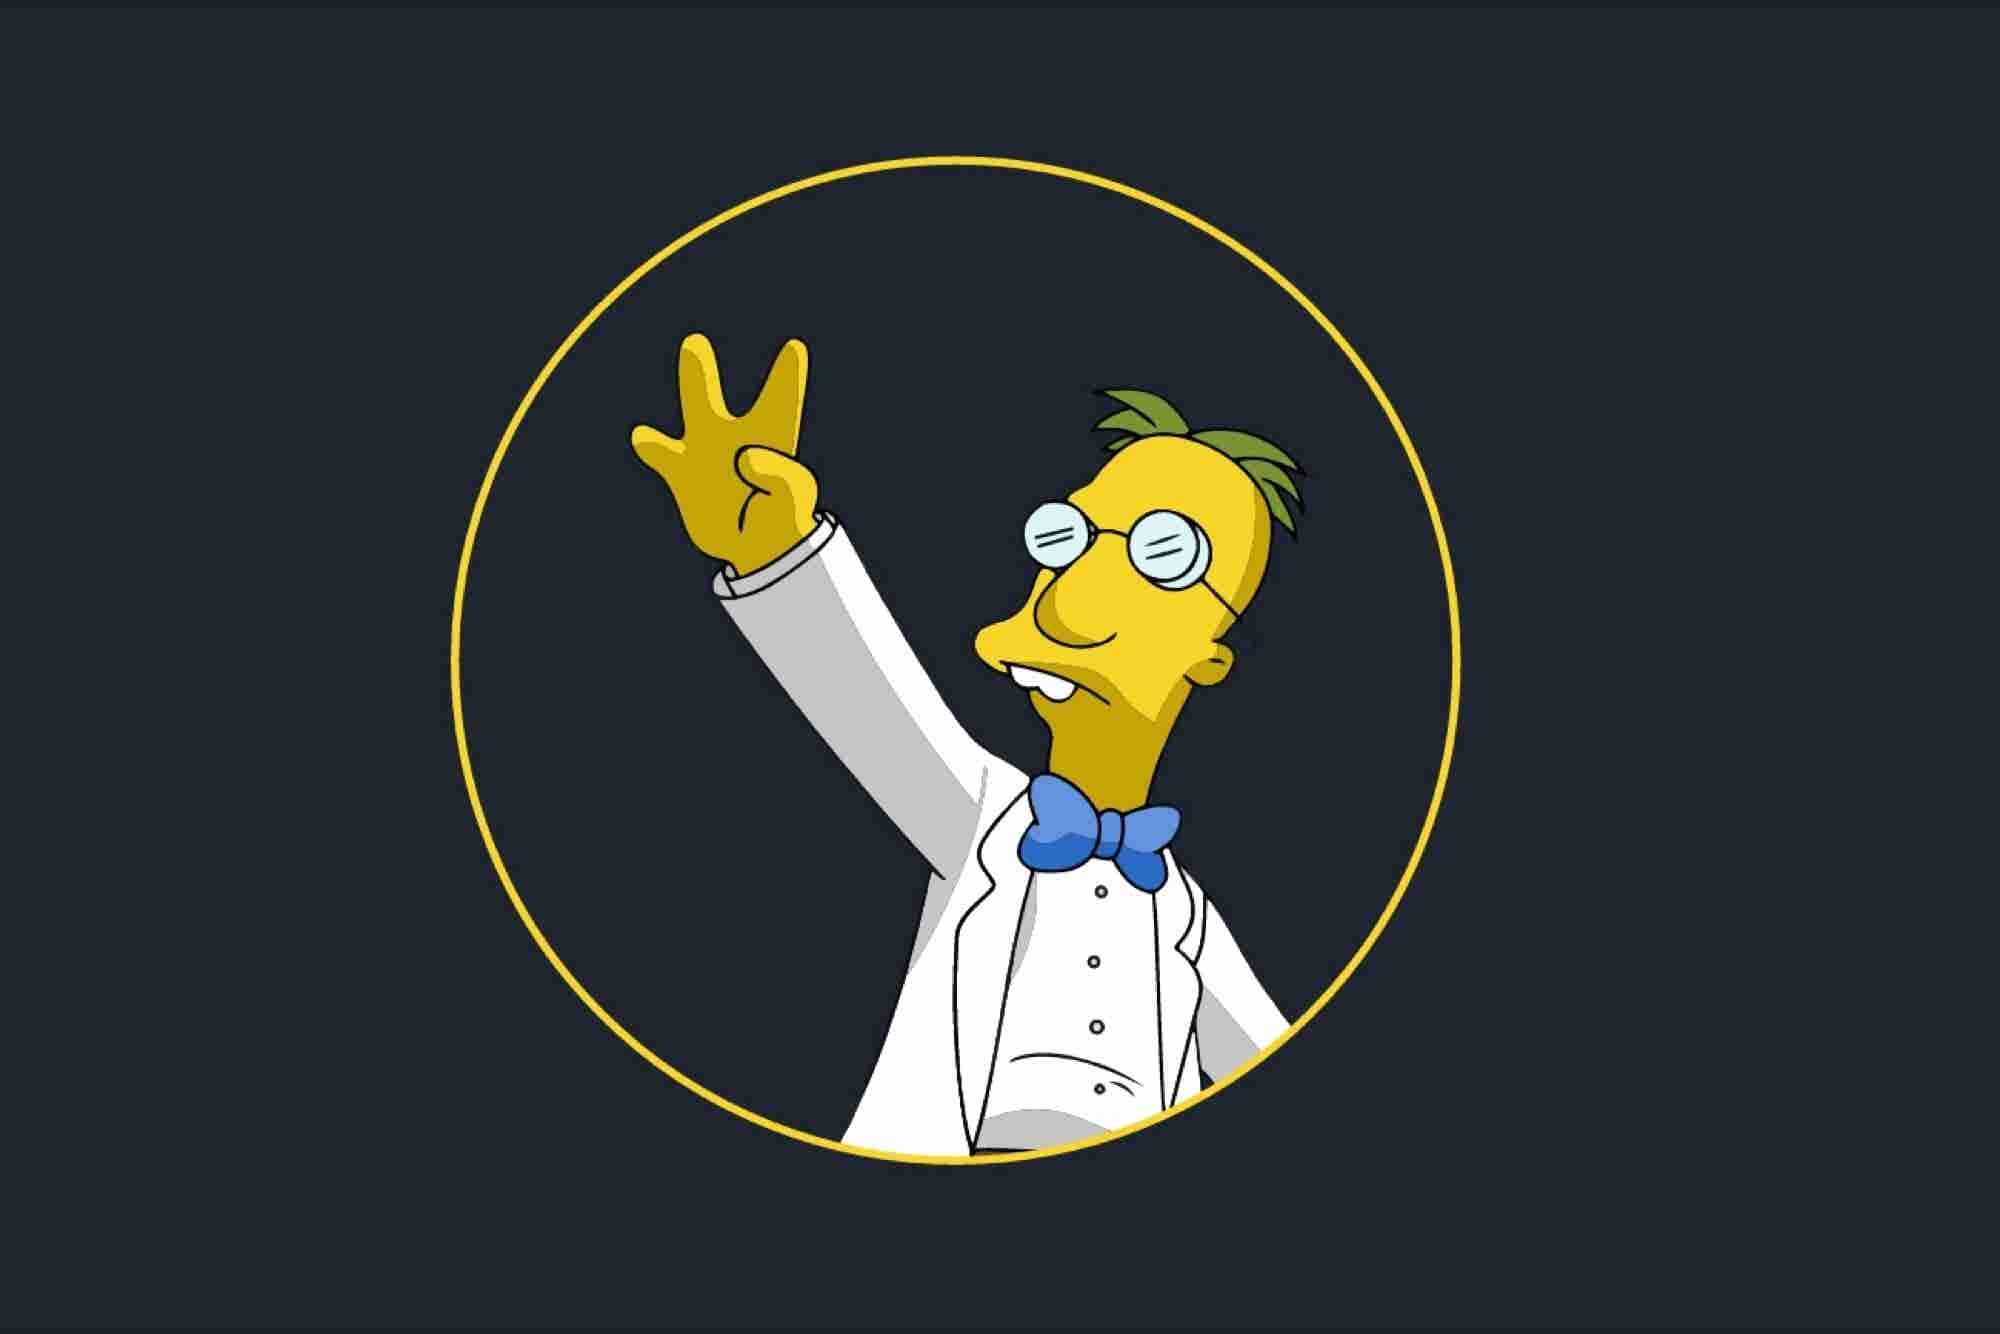 New Search Engine Allows You to Find 'The Simpsons' Screenshot You Desire